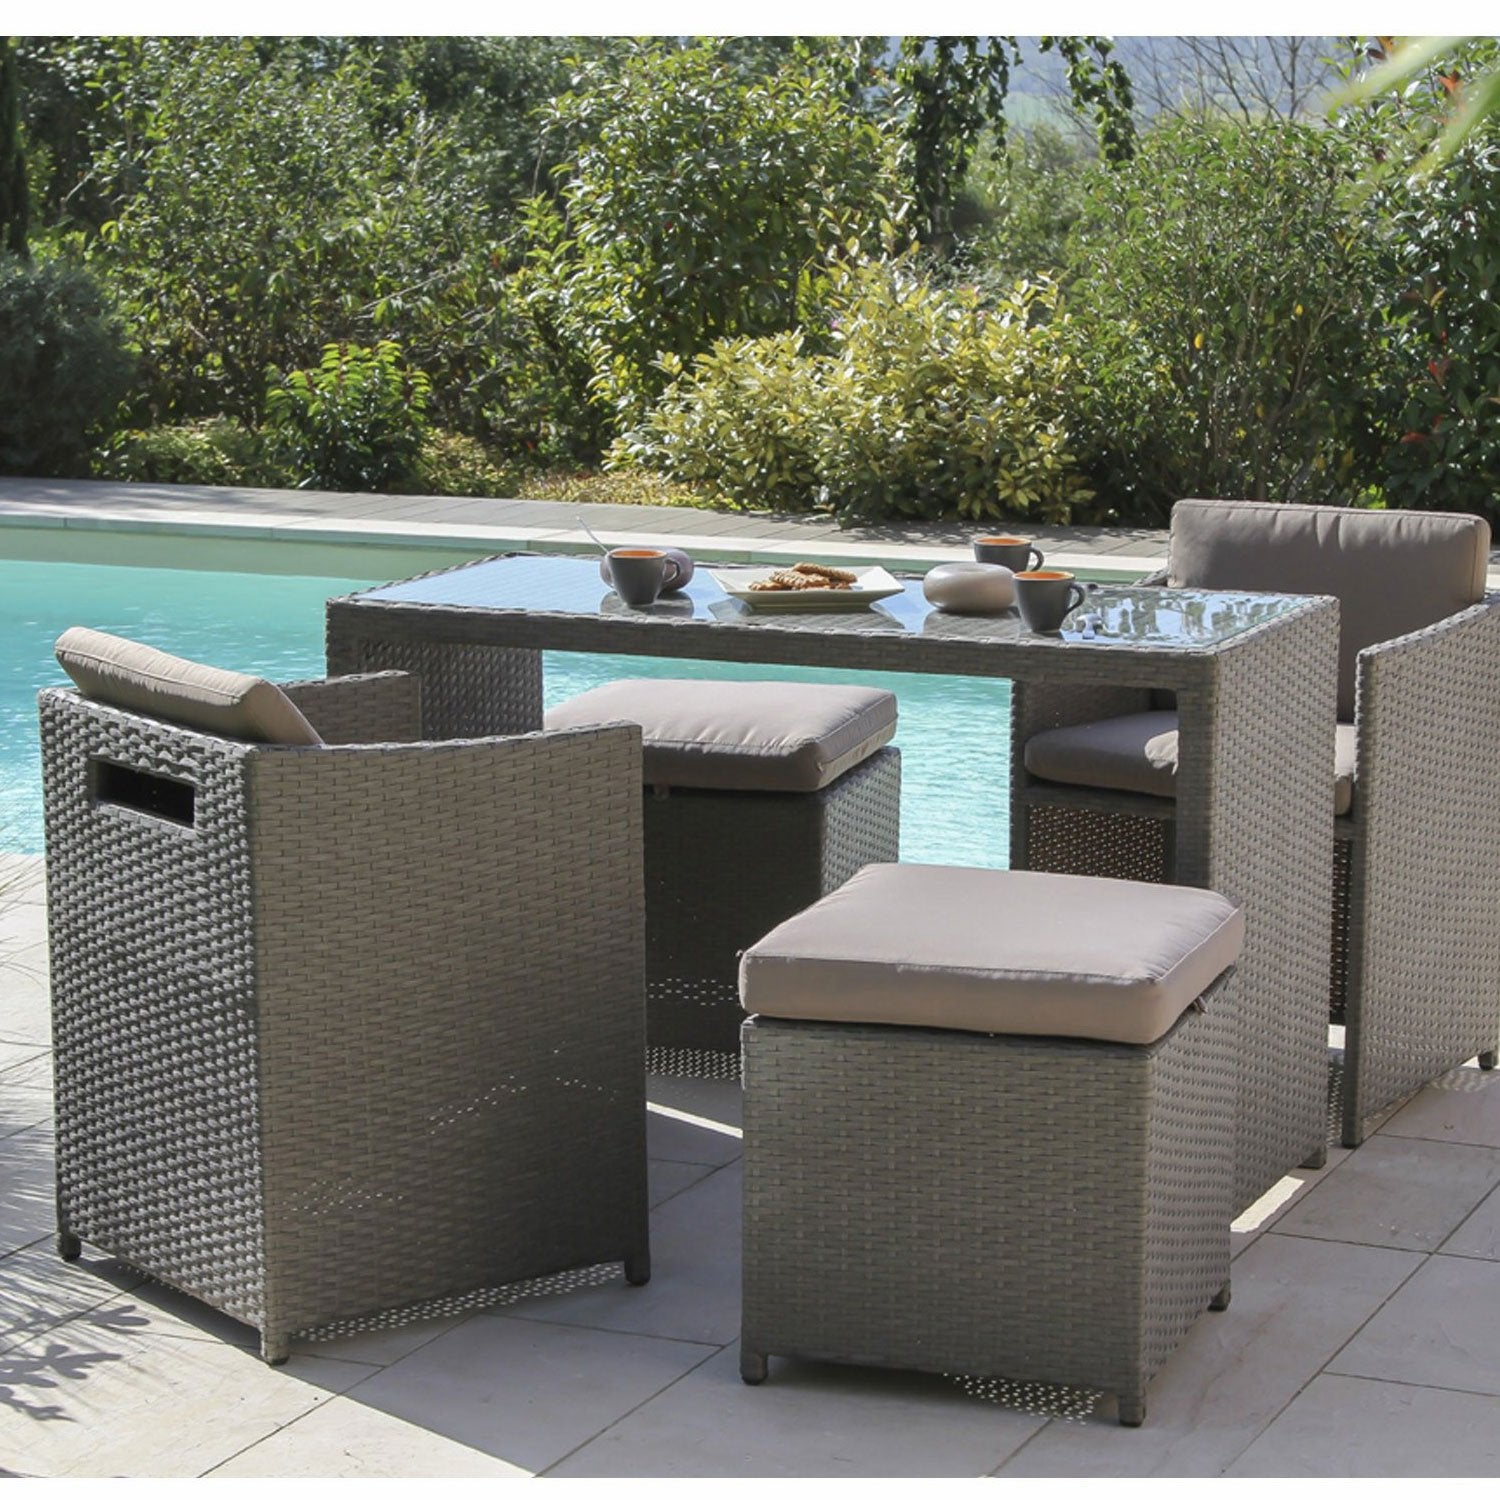 Salon de jardin foggia r sine tress e gris 1 table 2 for Mobilier jardin resine